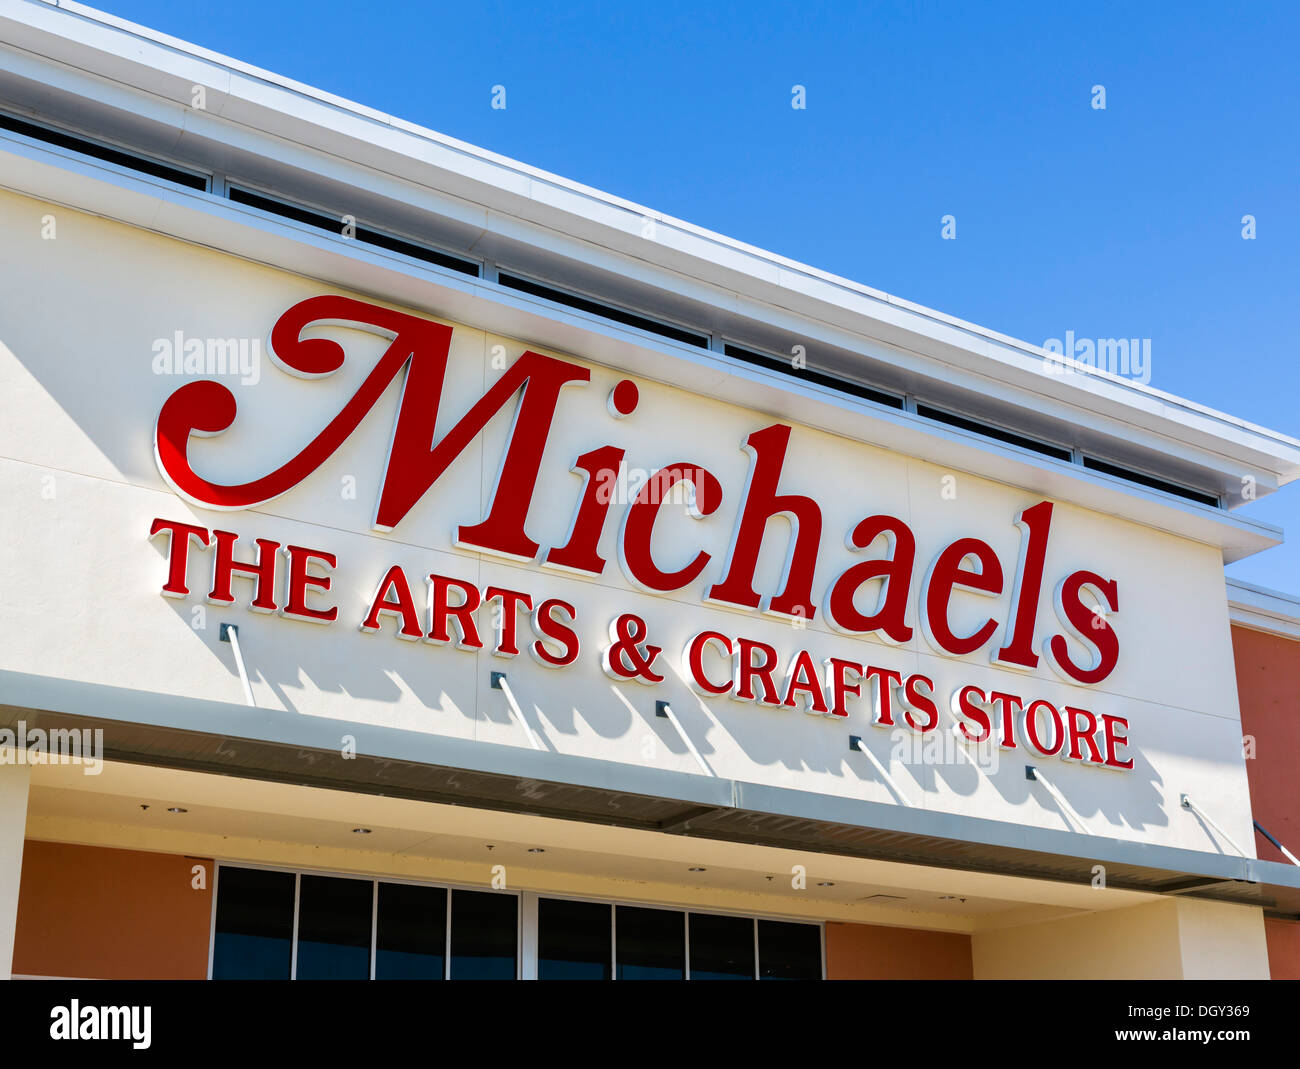 Michaels Arts and Crafts Store, Posner Park, near Haines City, Central Florida, USA - Stock Image